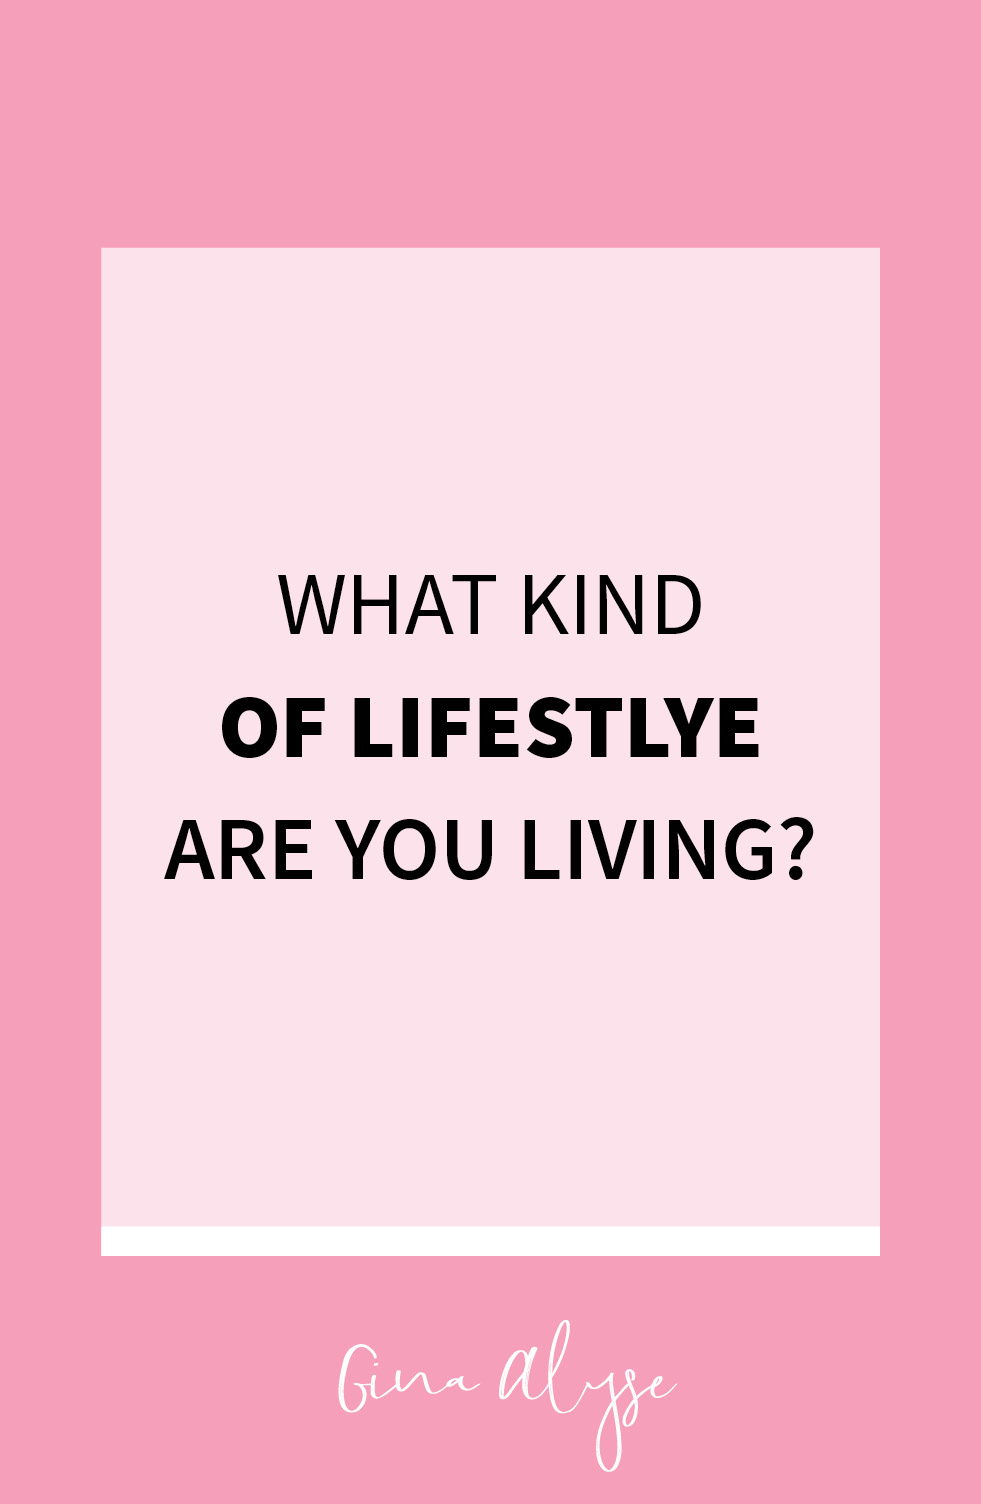 What Kind of Lifestyle Are You Living?